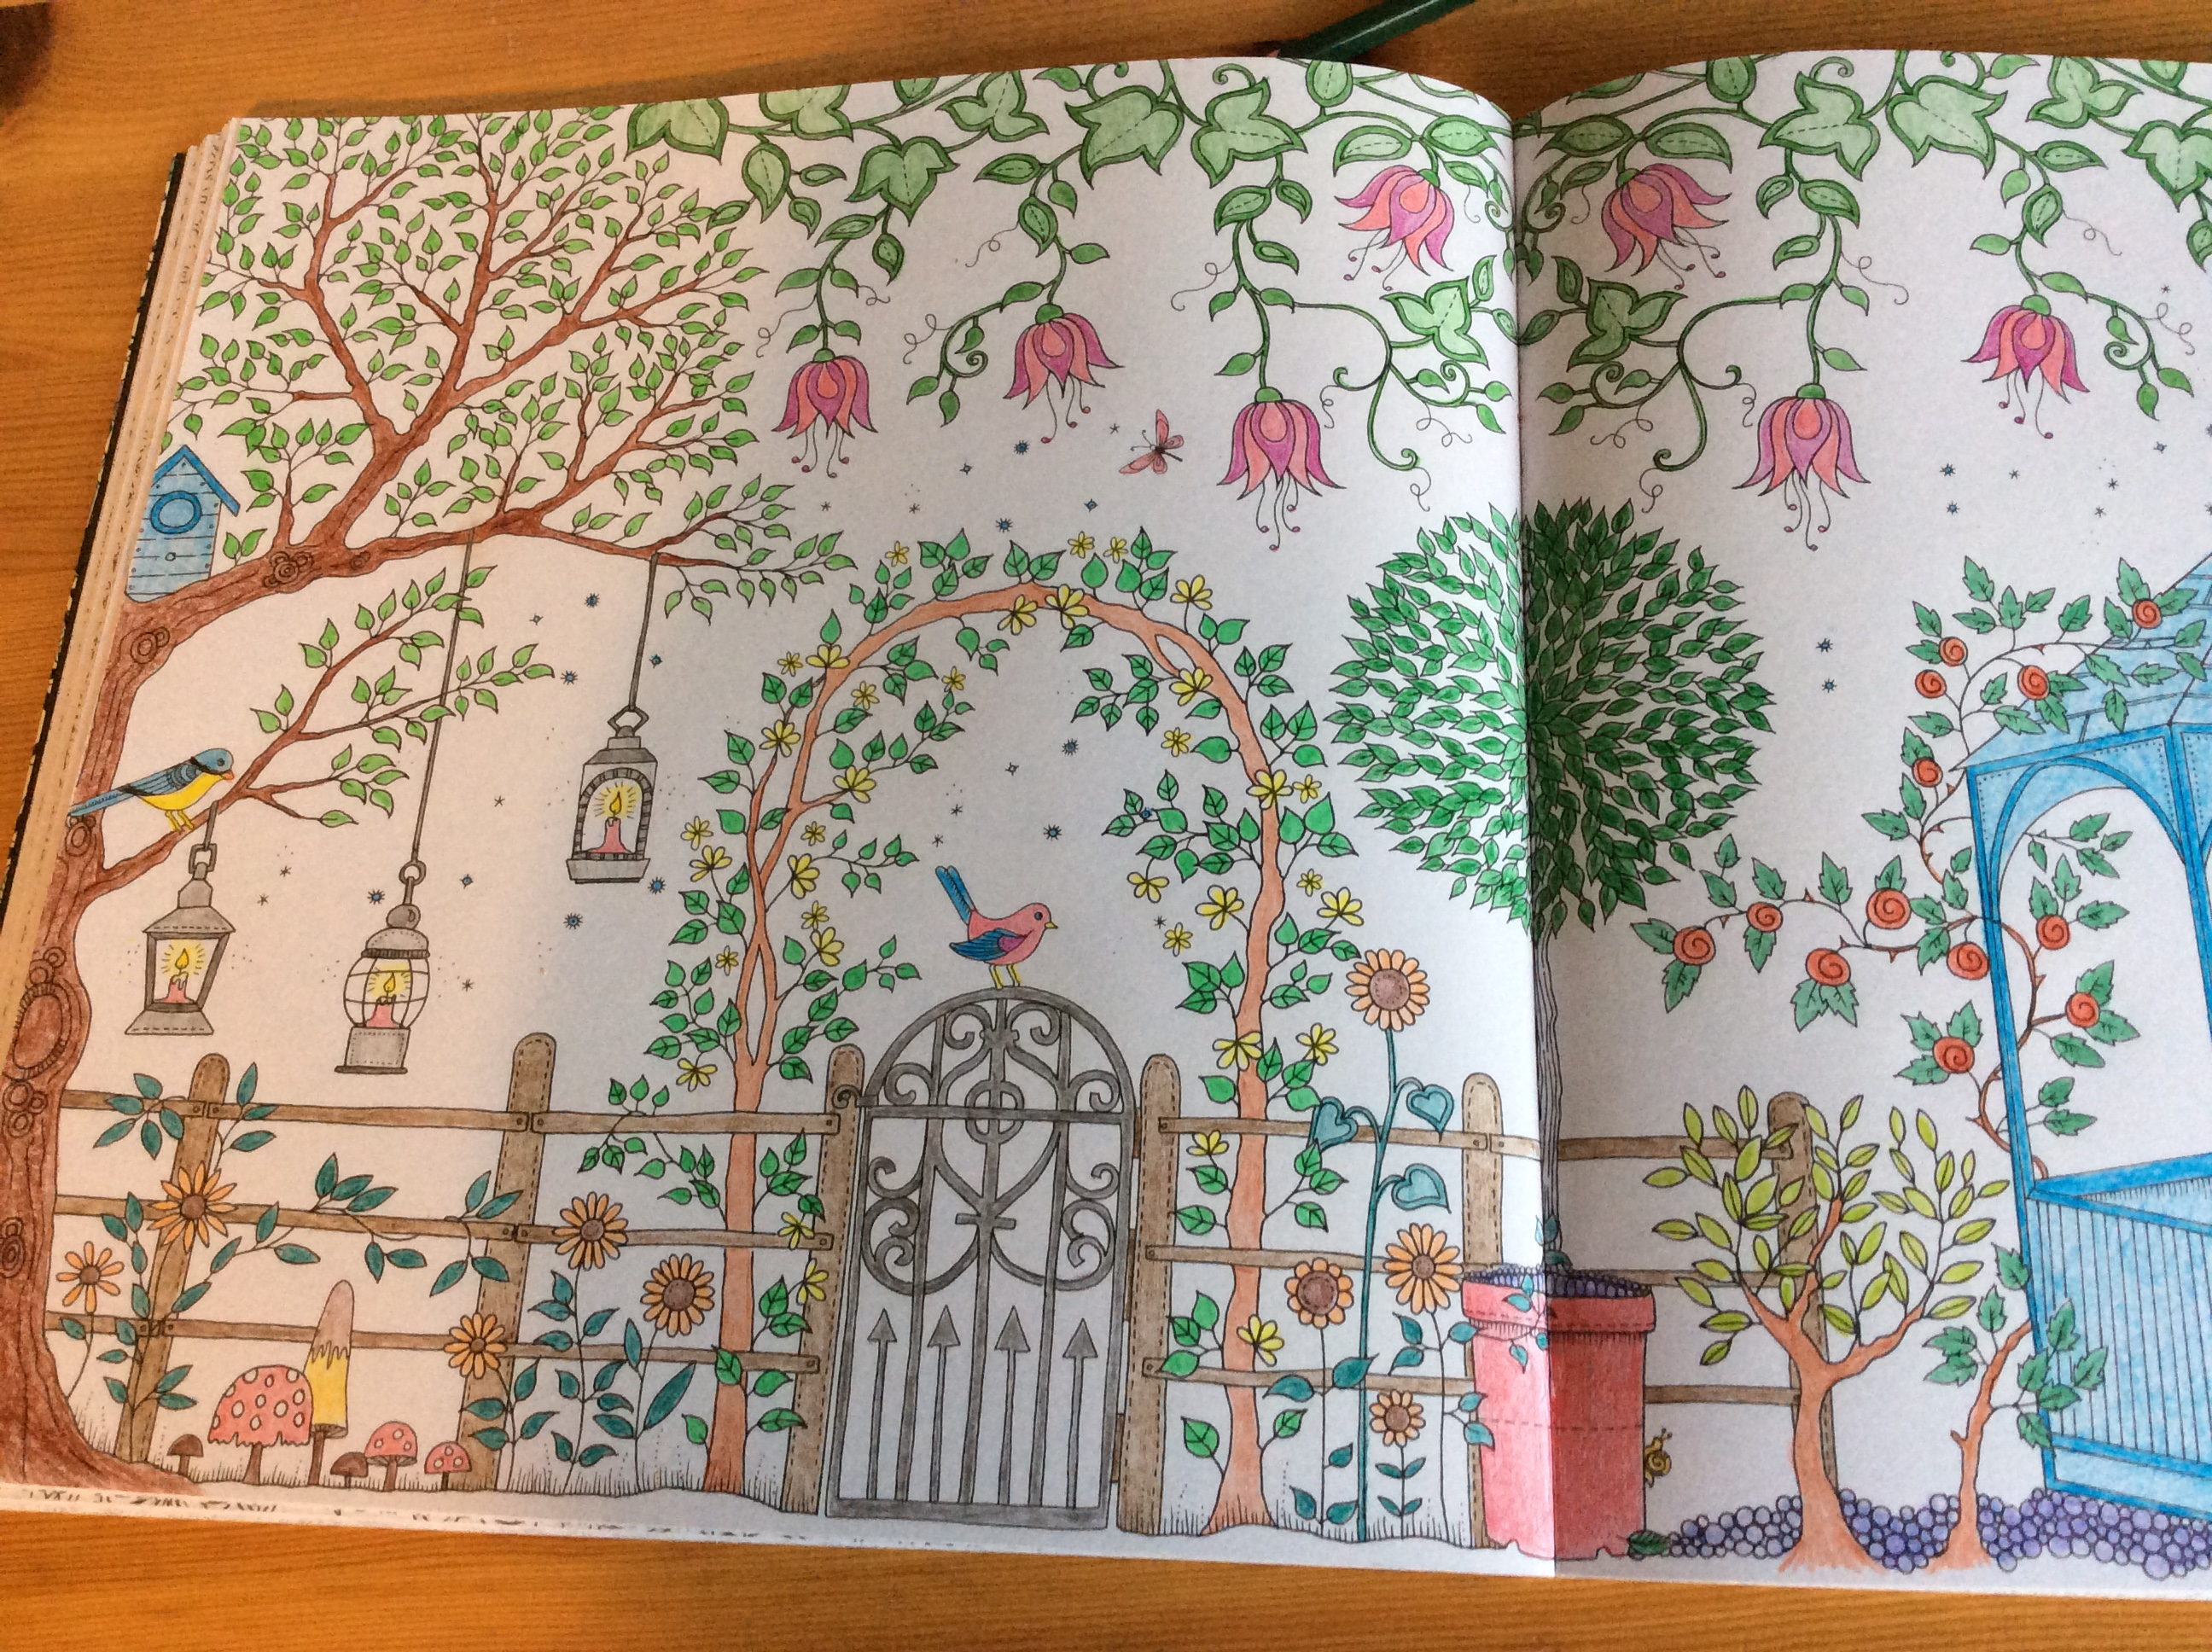 Coloriages et petites cr ations jardin secret for Akeo jardin secret 2015